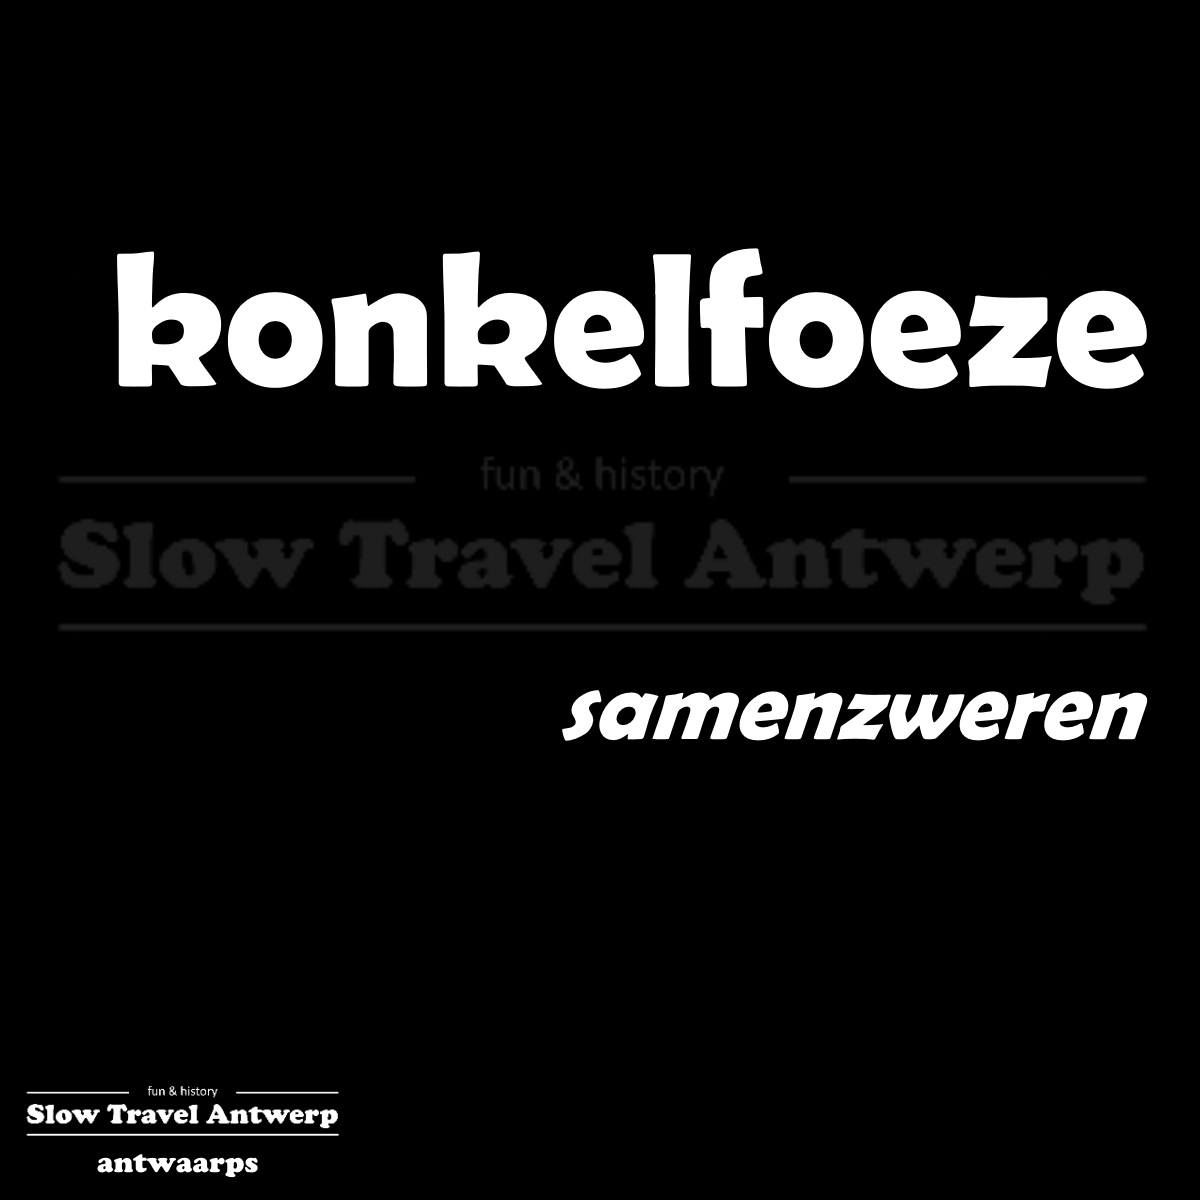 konkelfoeze – samenzweren – to conspire